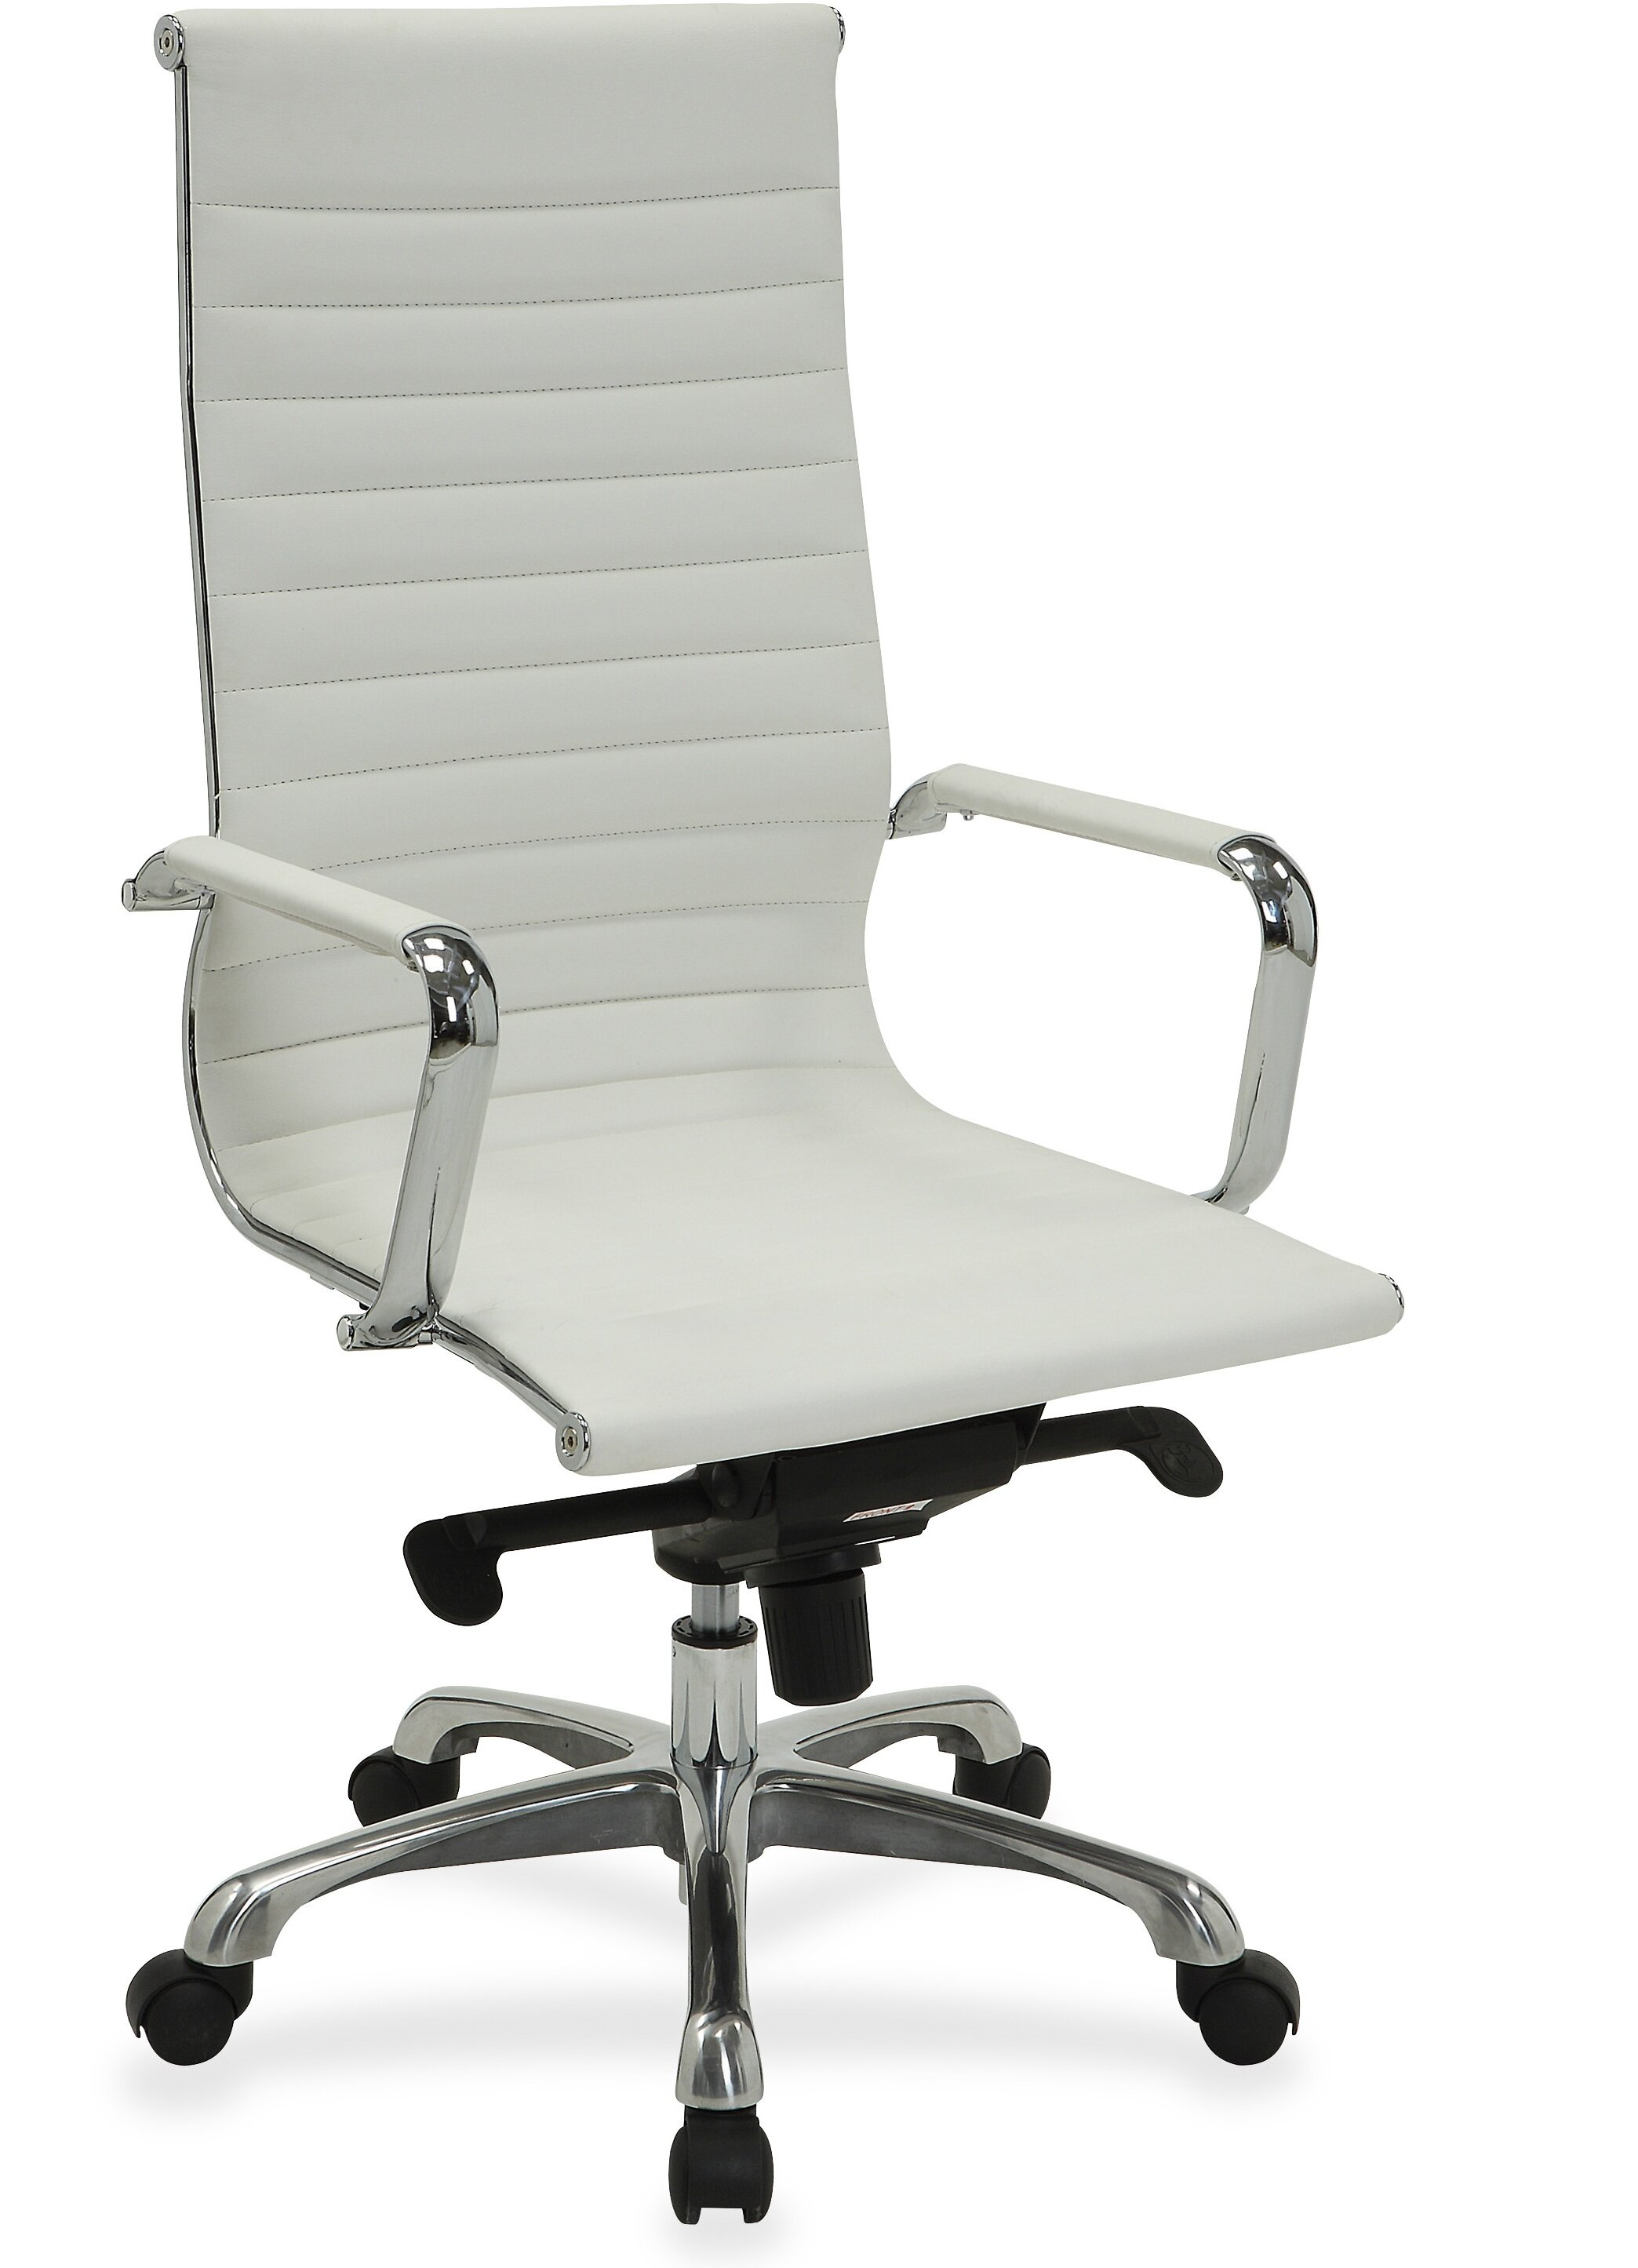 Lorell Modern High Back Leather Executive Chair | Wayfair